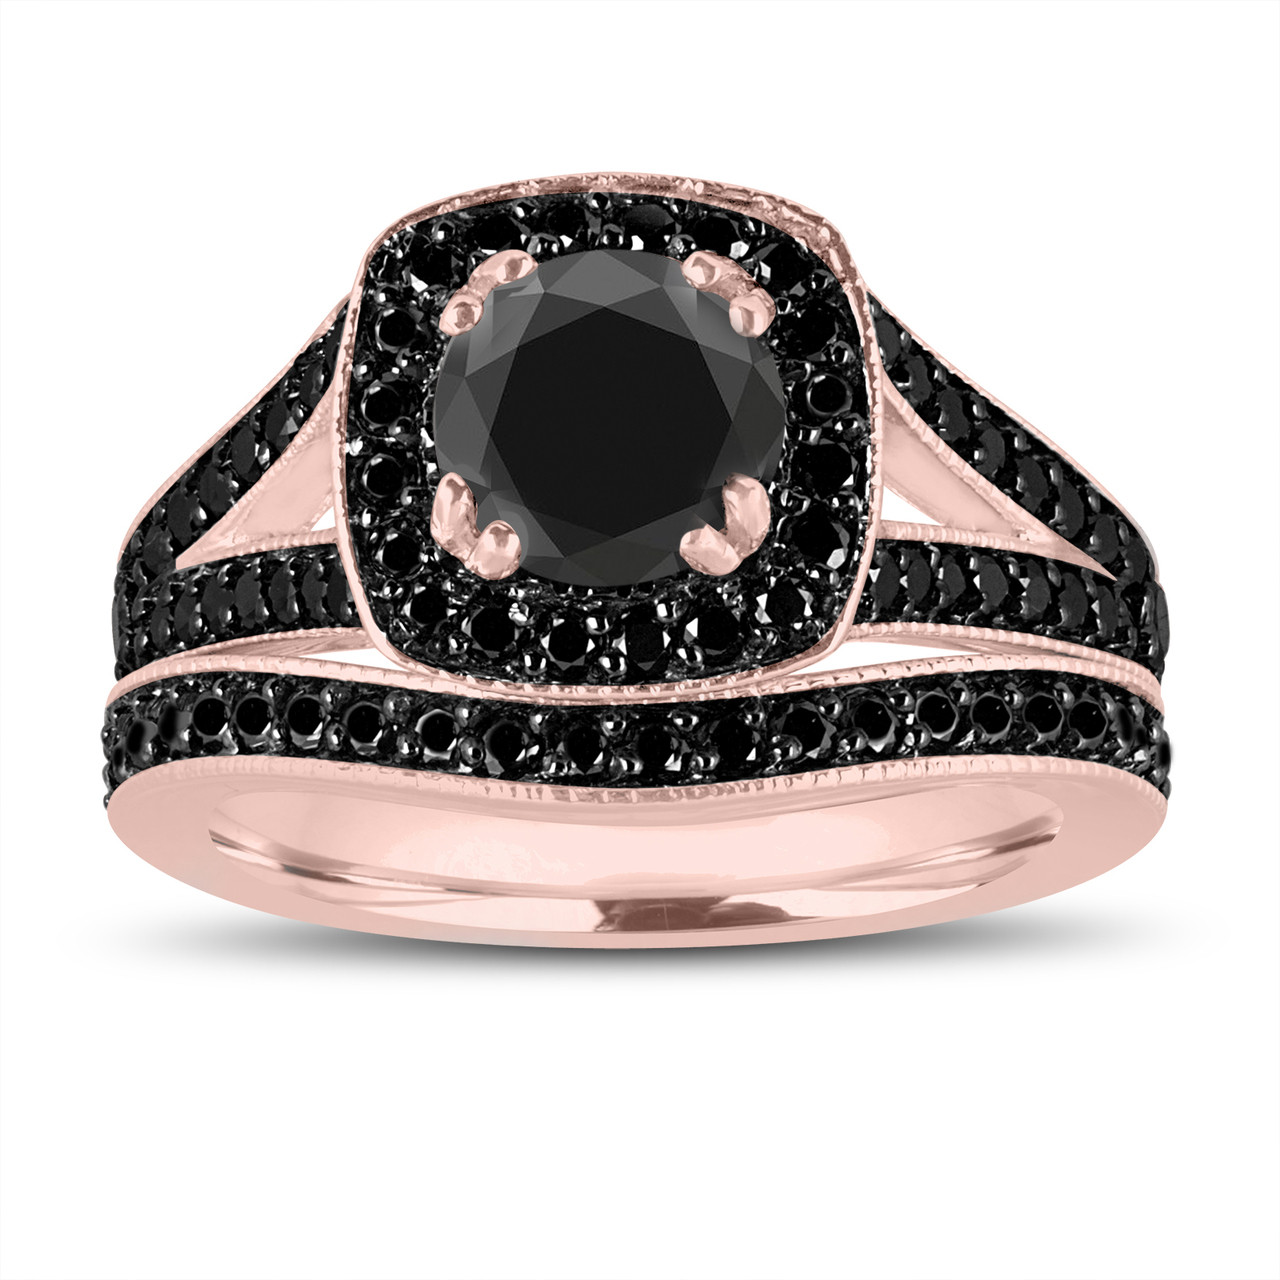 Fancy Black Diamonds Engagement Ring And Wedding Band Sets